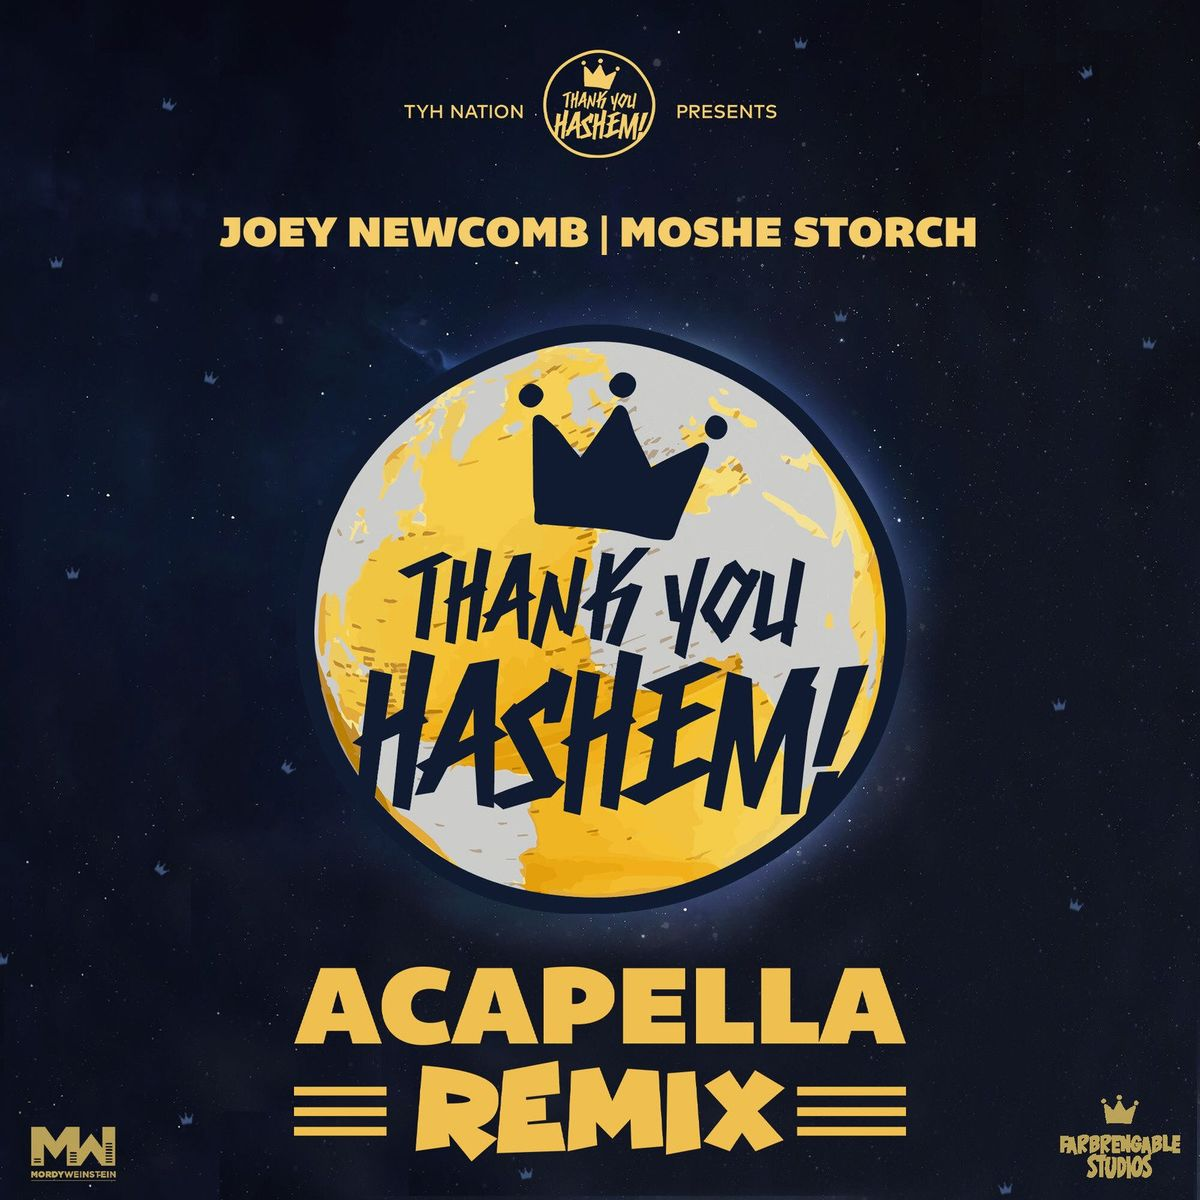 """TYH Nation Presents: Joey Newcomb & Moshe Storch With A New Acapella Remix On """"Thank You Hashem"""""""